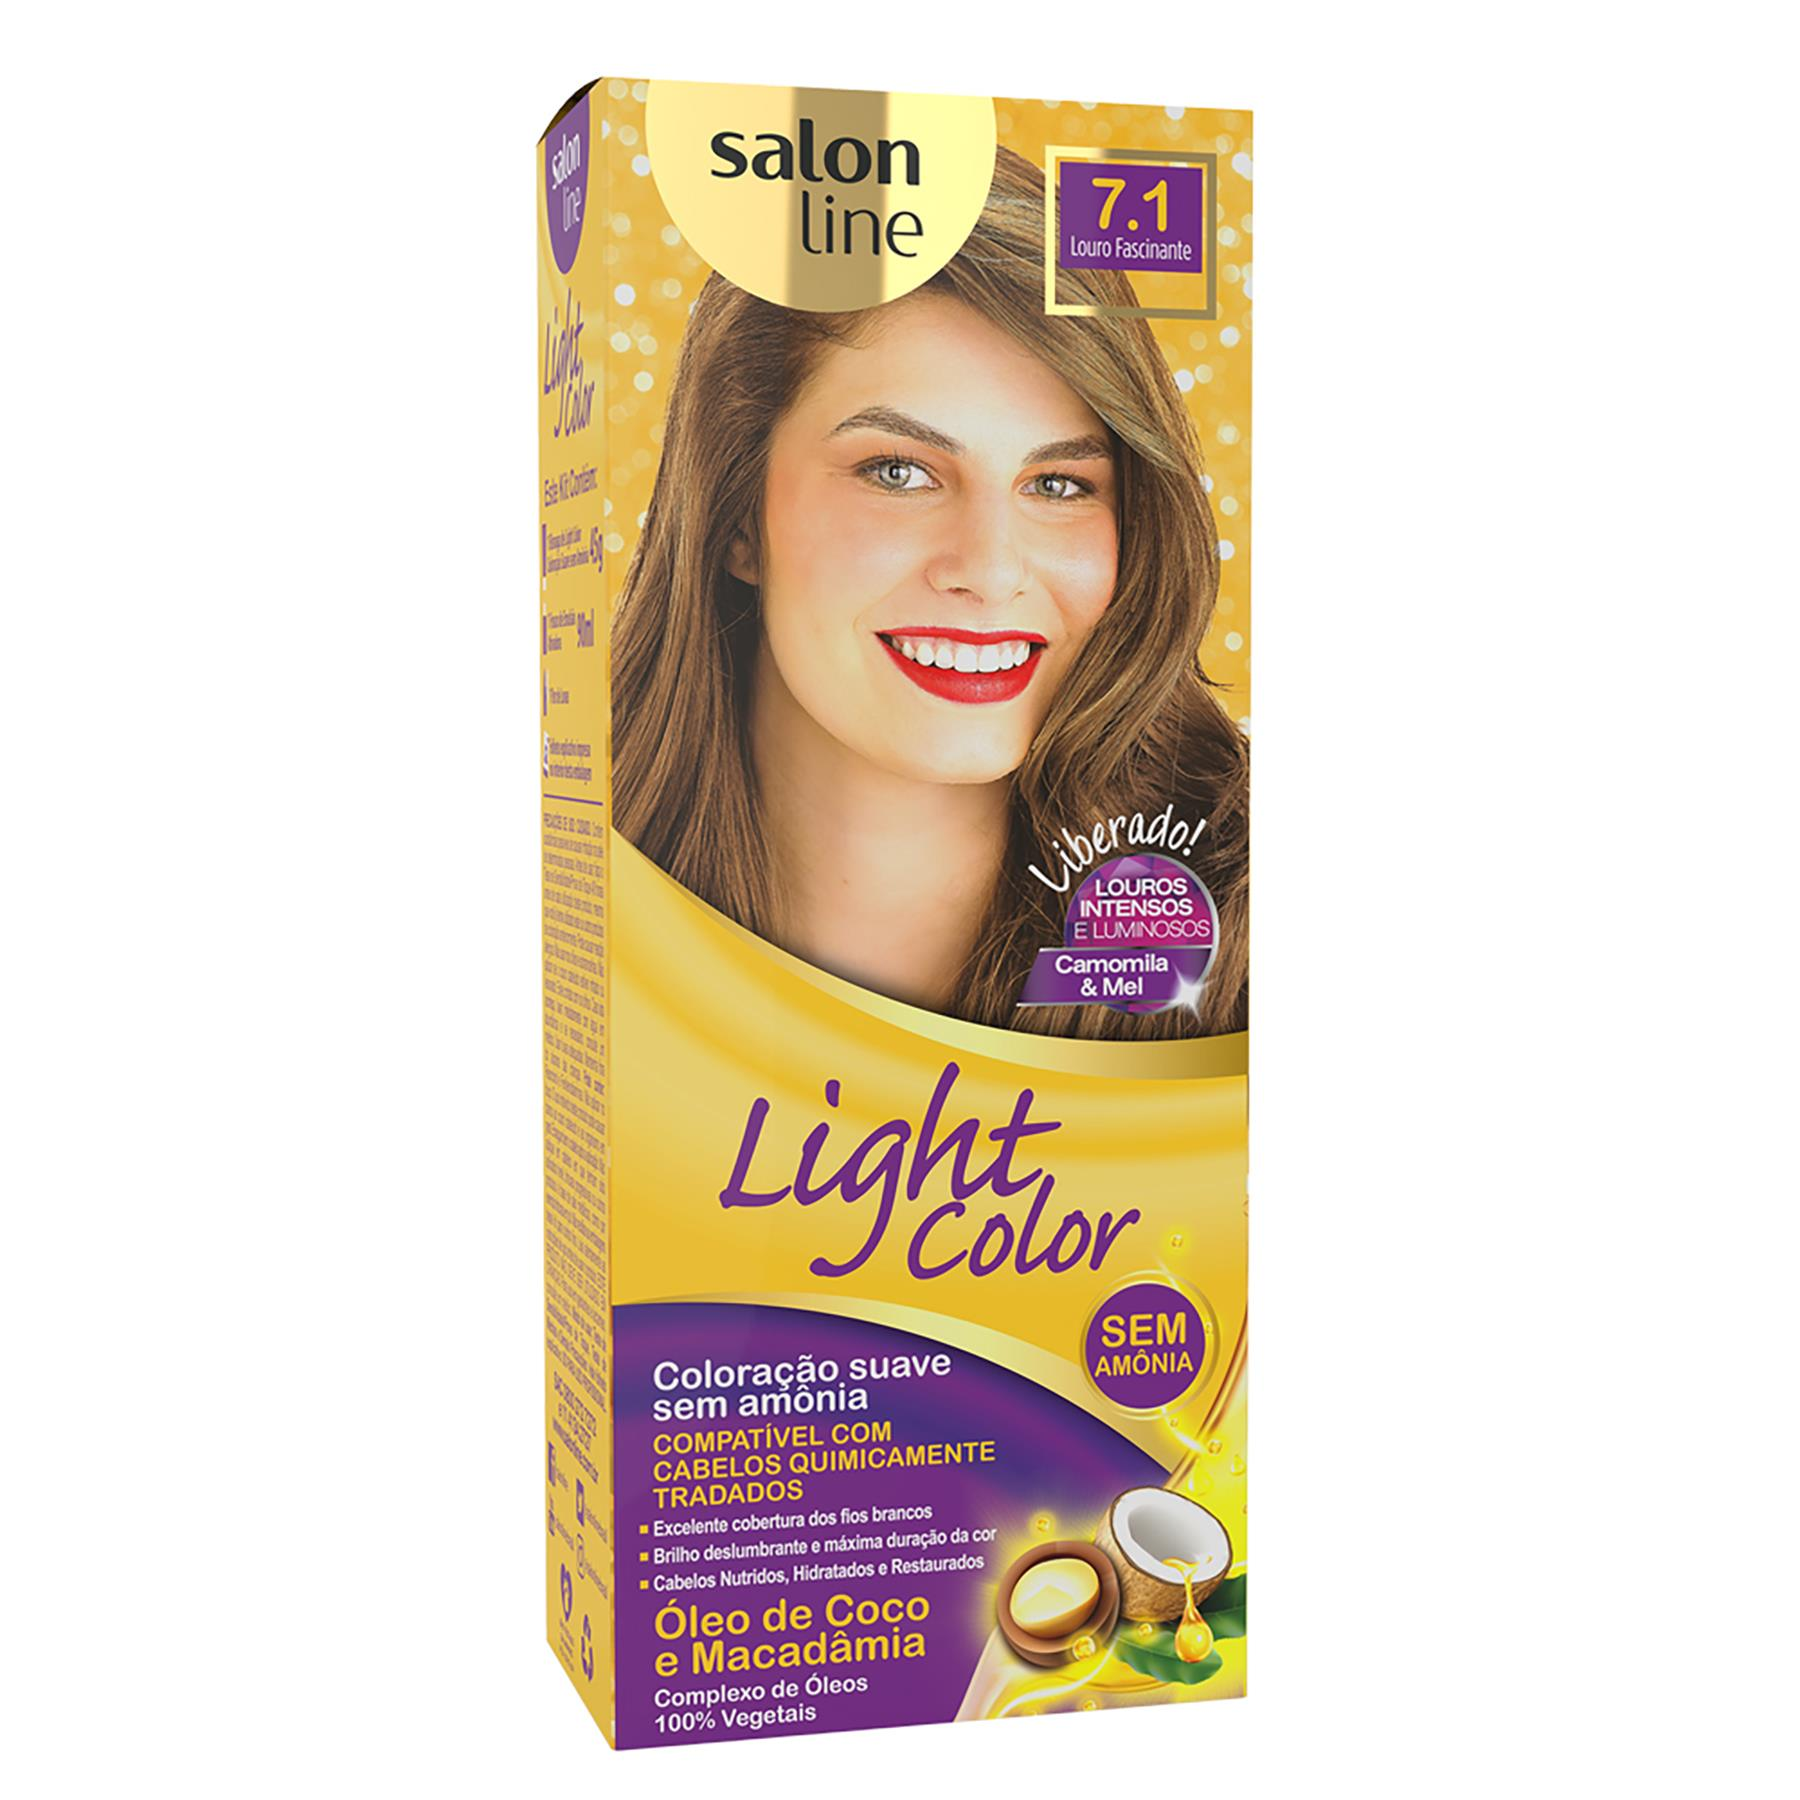 COLORAÇÃO LOURO FASCINANTE 7.1 - LIGHT COLOR SALON LINE